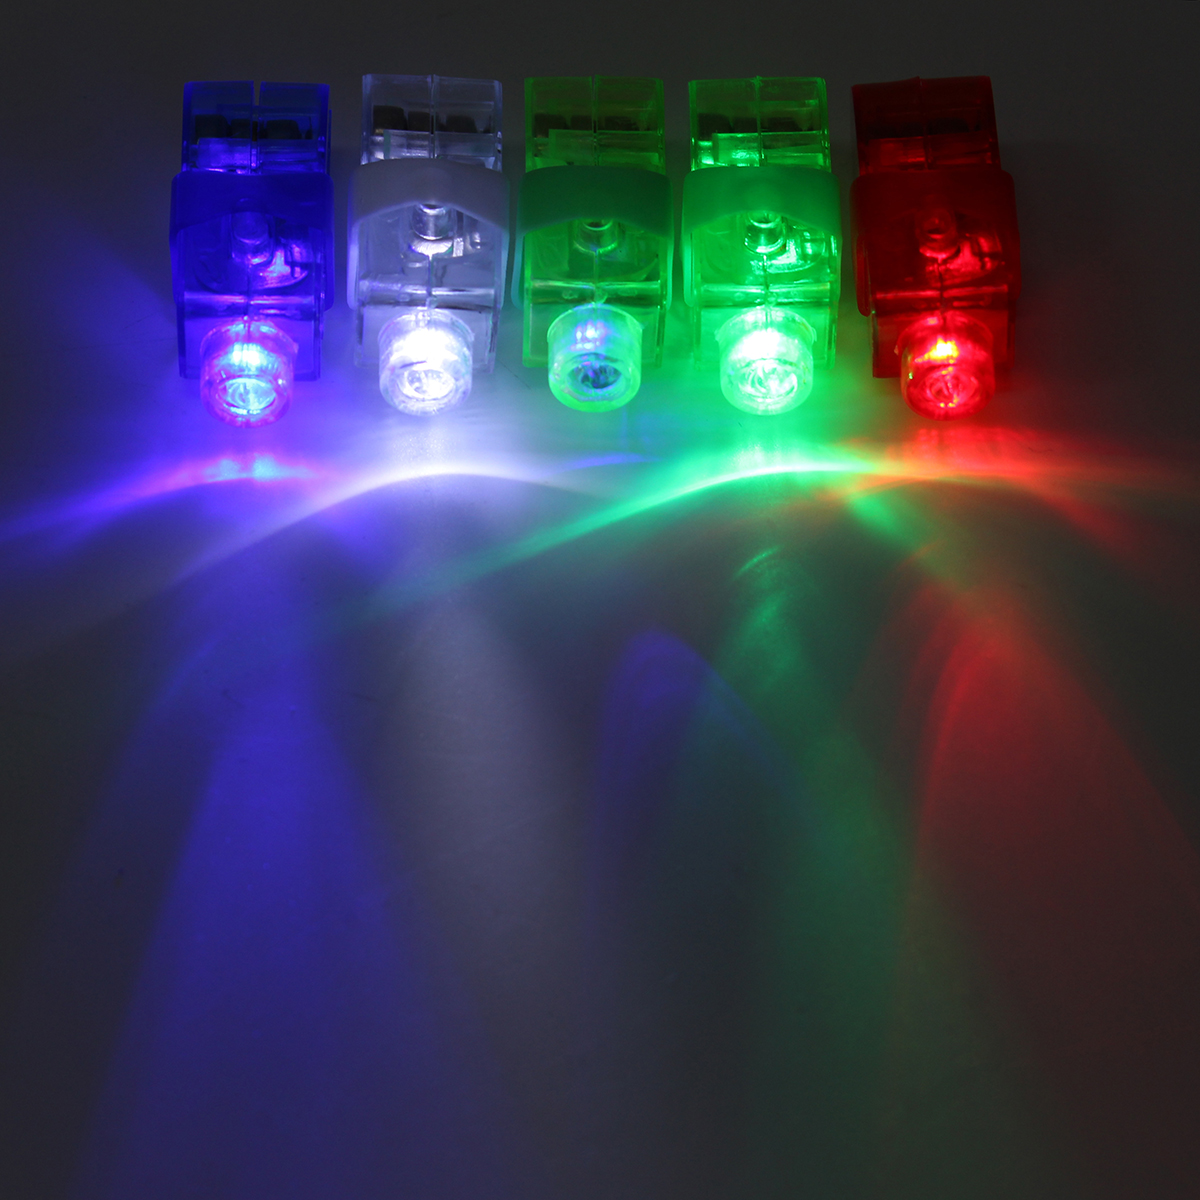 jiguoor red green blue white rgb luminous finger indicator light colorful led night lamp holiday. Black Bedroom Furniture Sets. Home Design Ideas